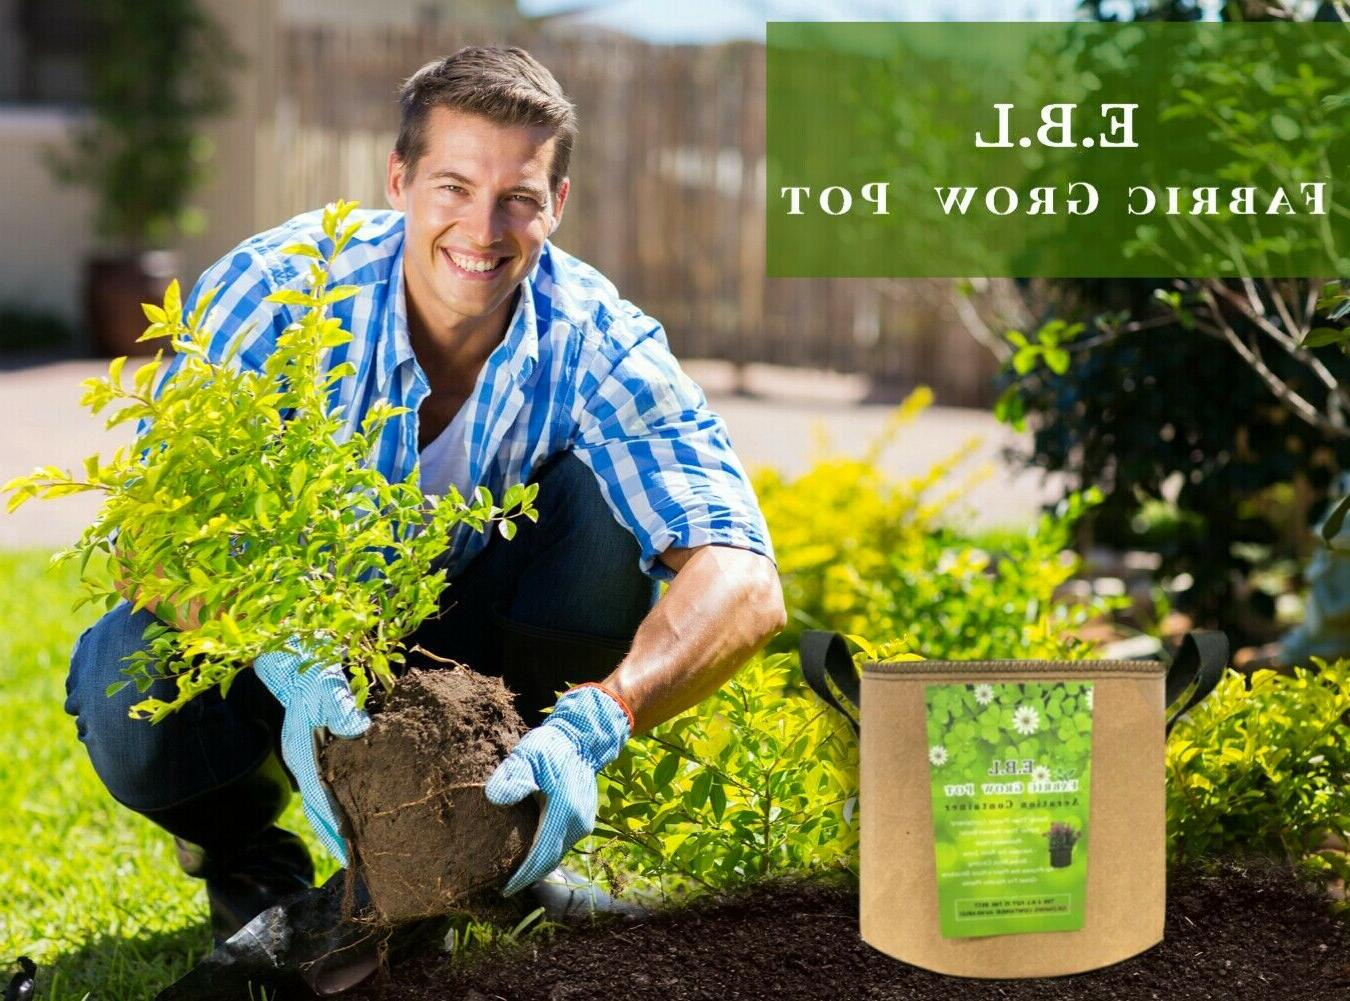 8 Bags Garden planters Aeration Plant Fabric